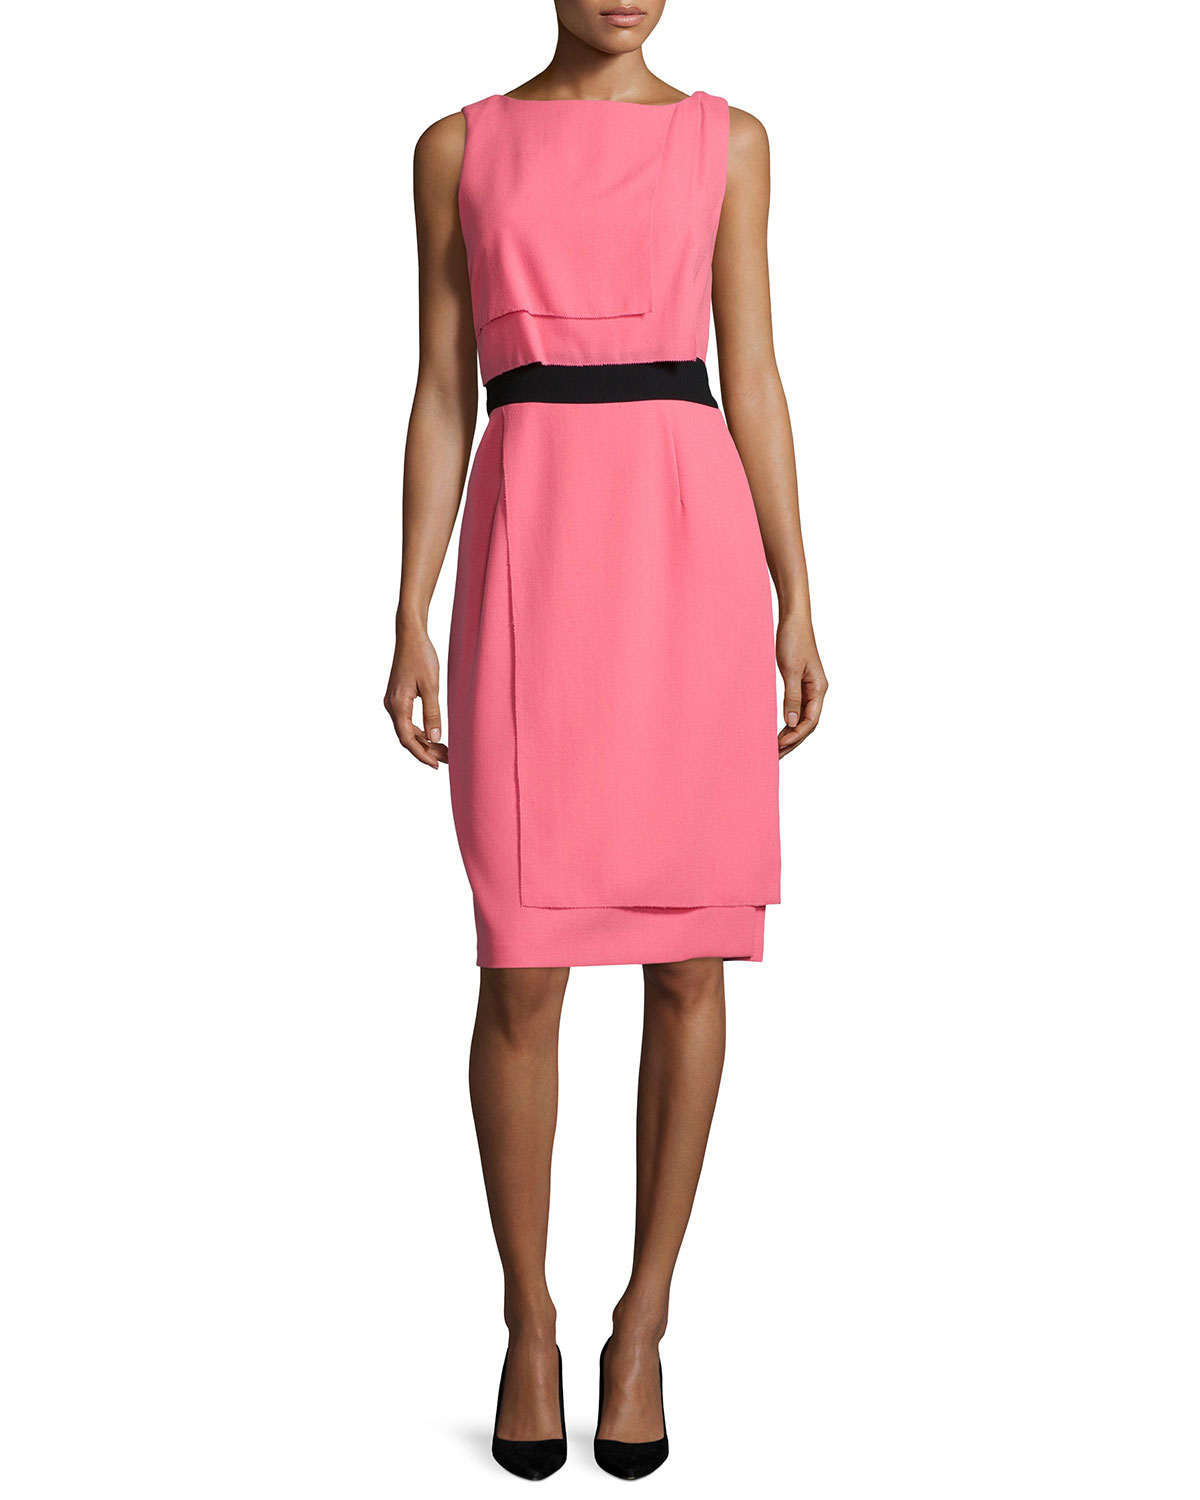 Sleeveless Two-Tone Layered Dress, Shell Pink